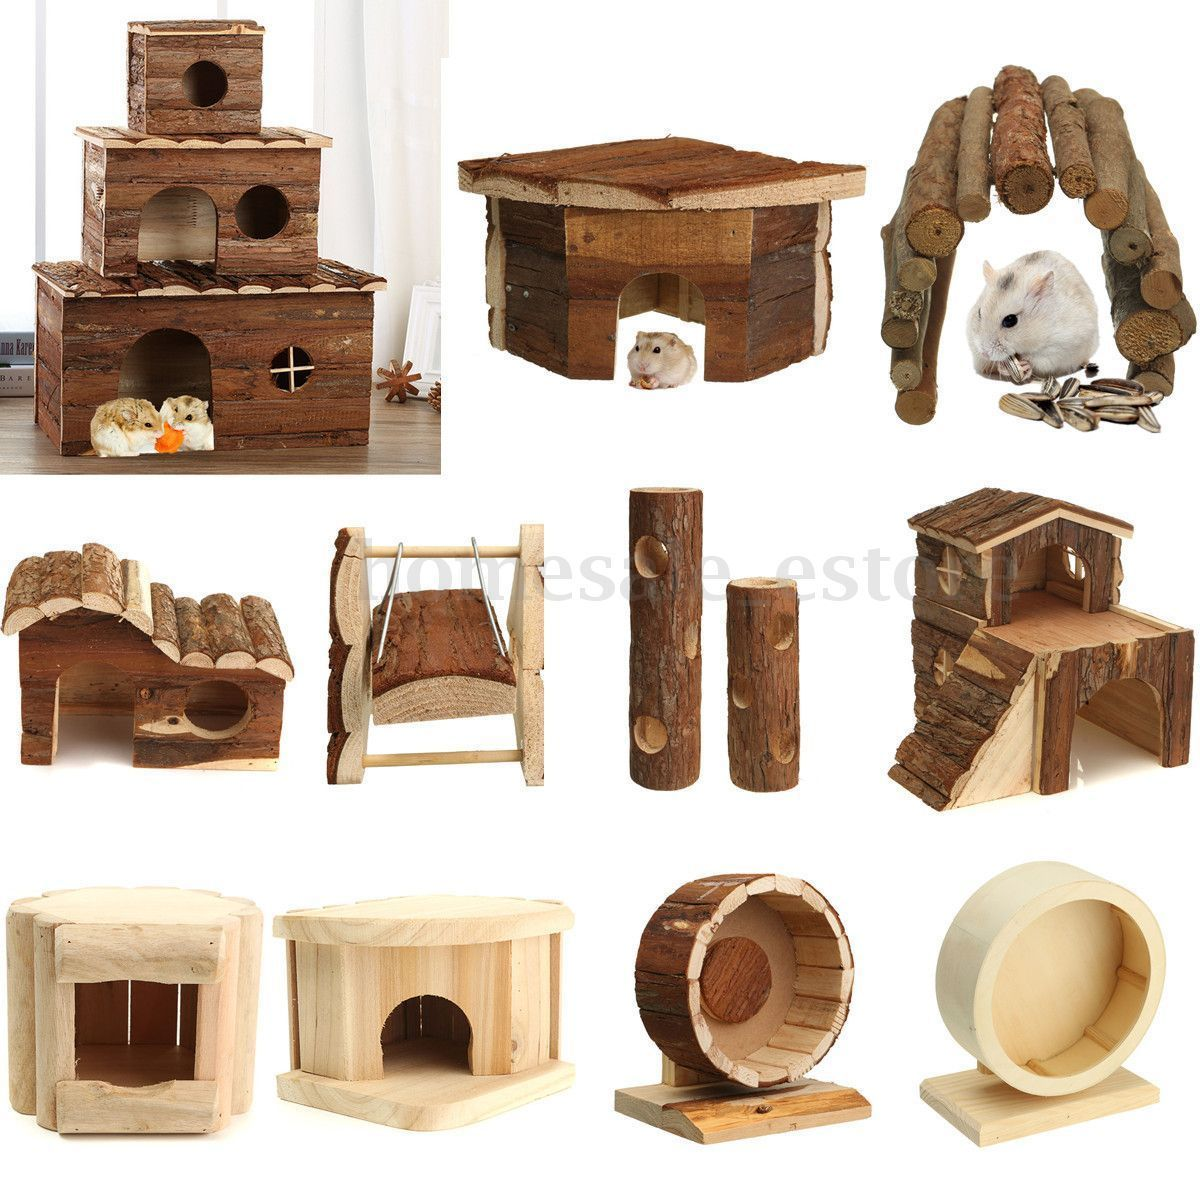 Wooden house villa cage exercise toys for hamster hedgehog for Guinea pig accessories diy